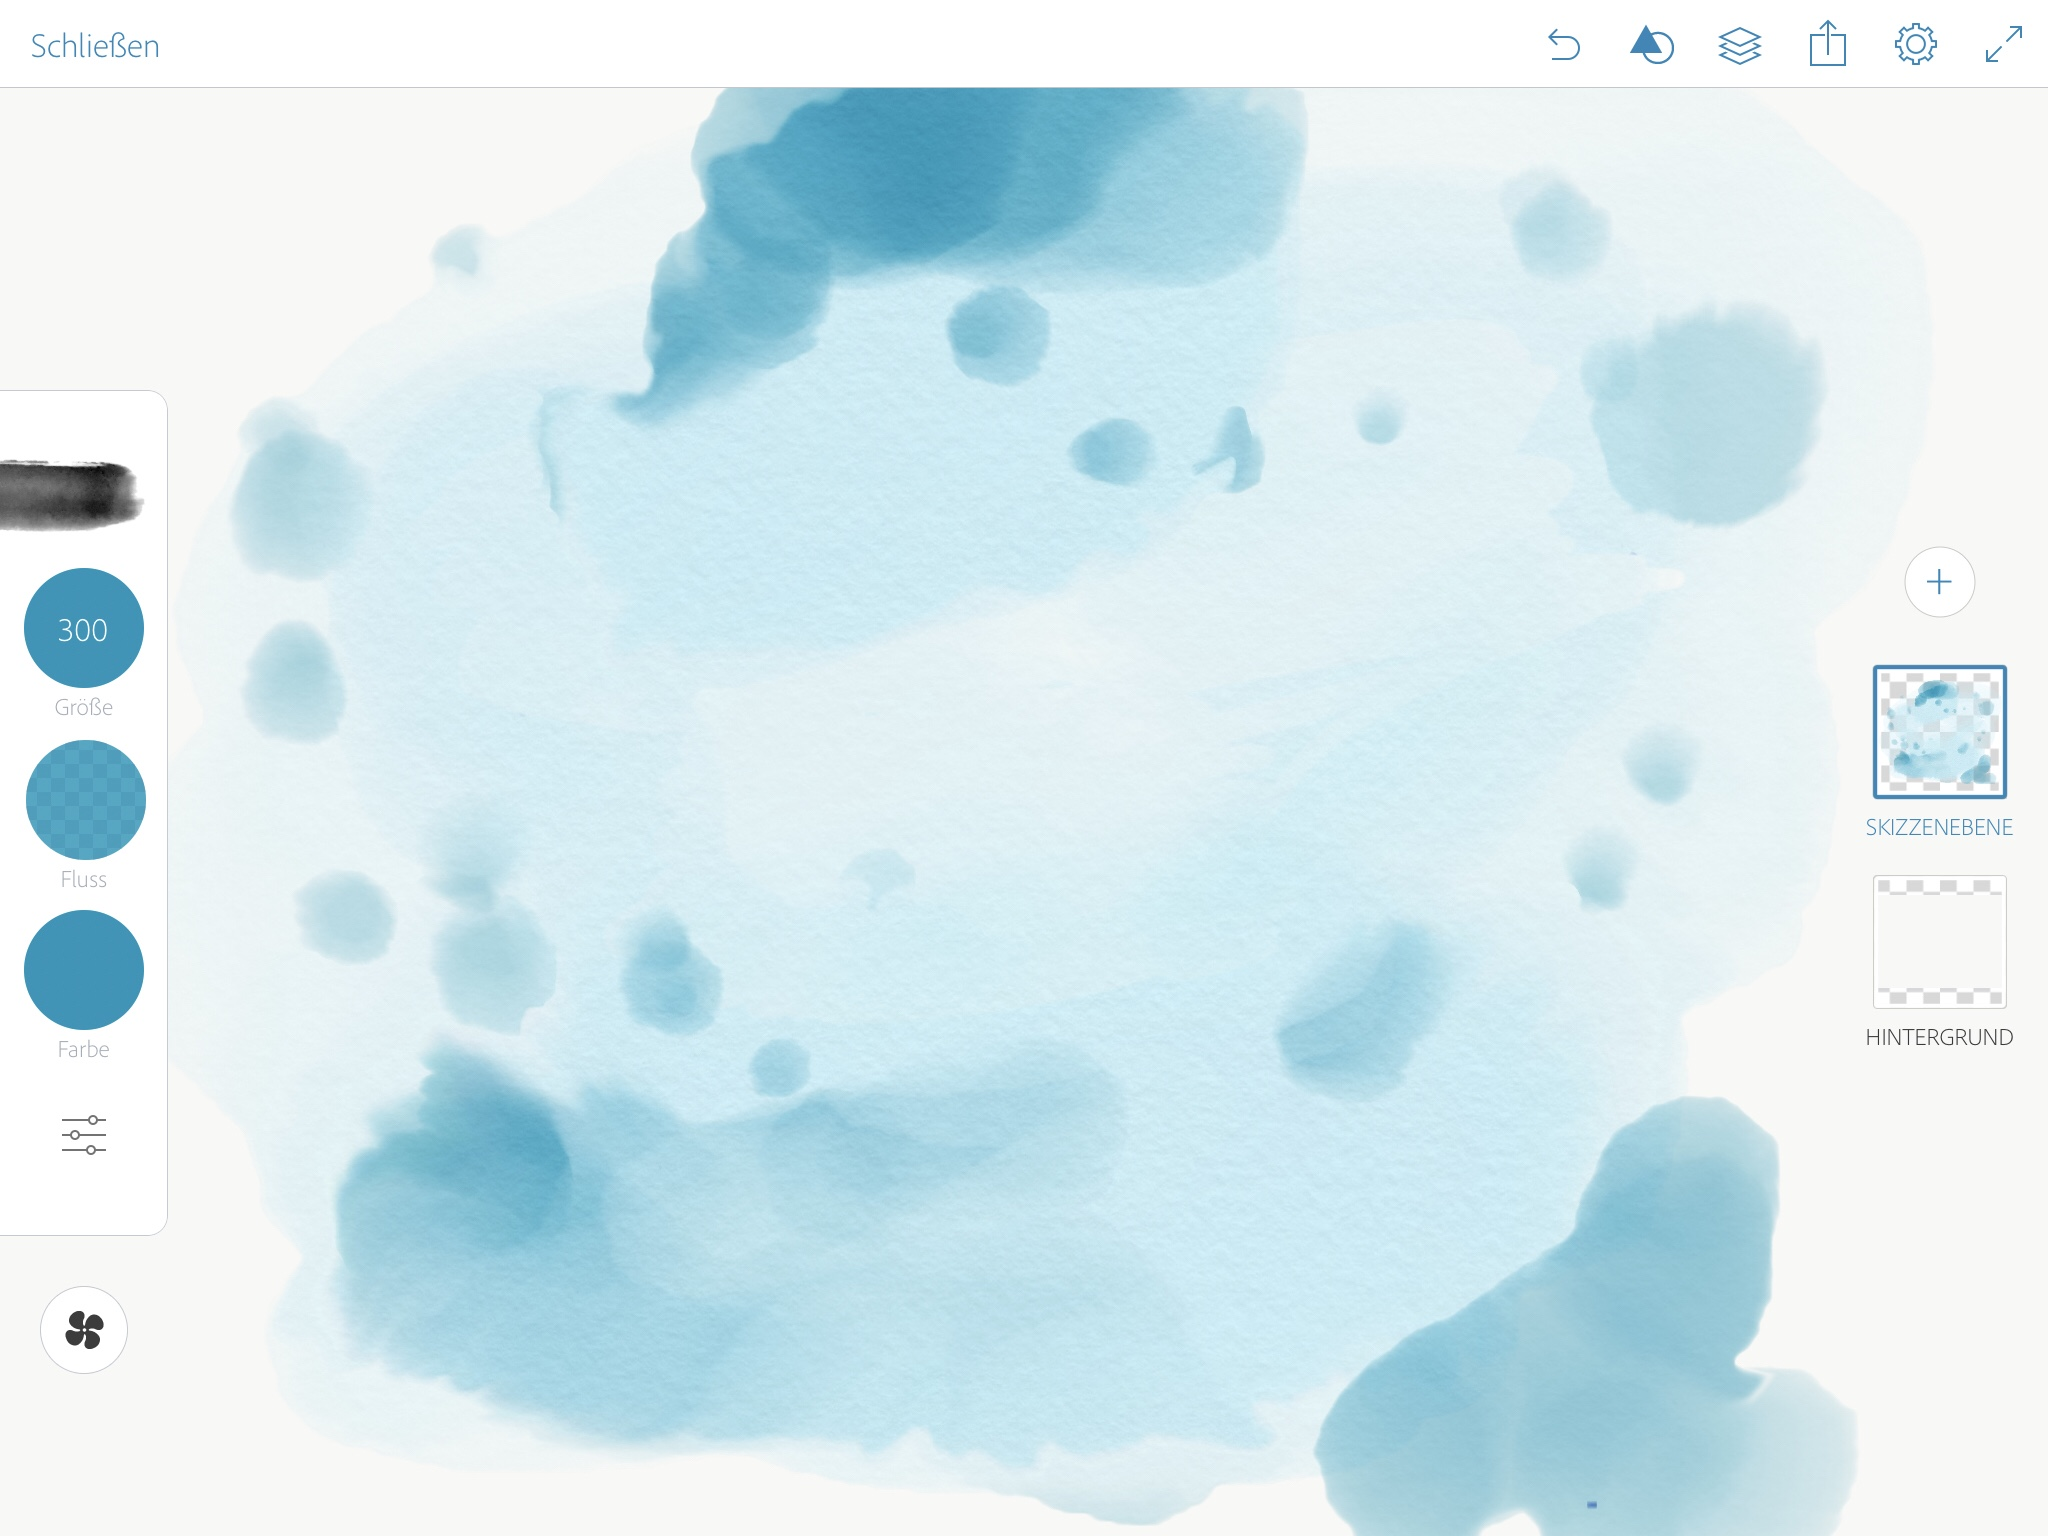 TBR Adobe Photoshop Sketch 6